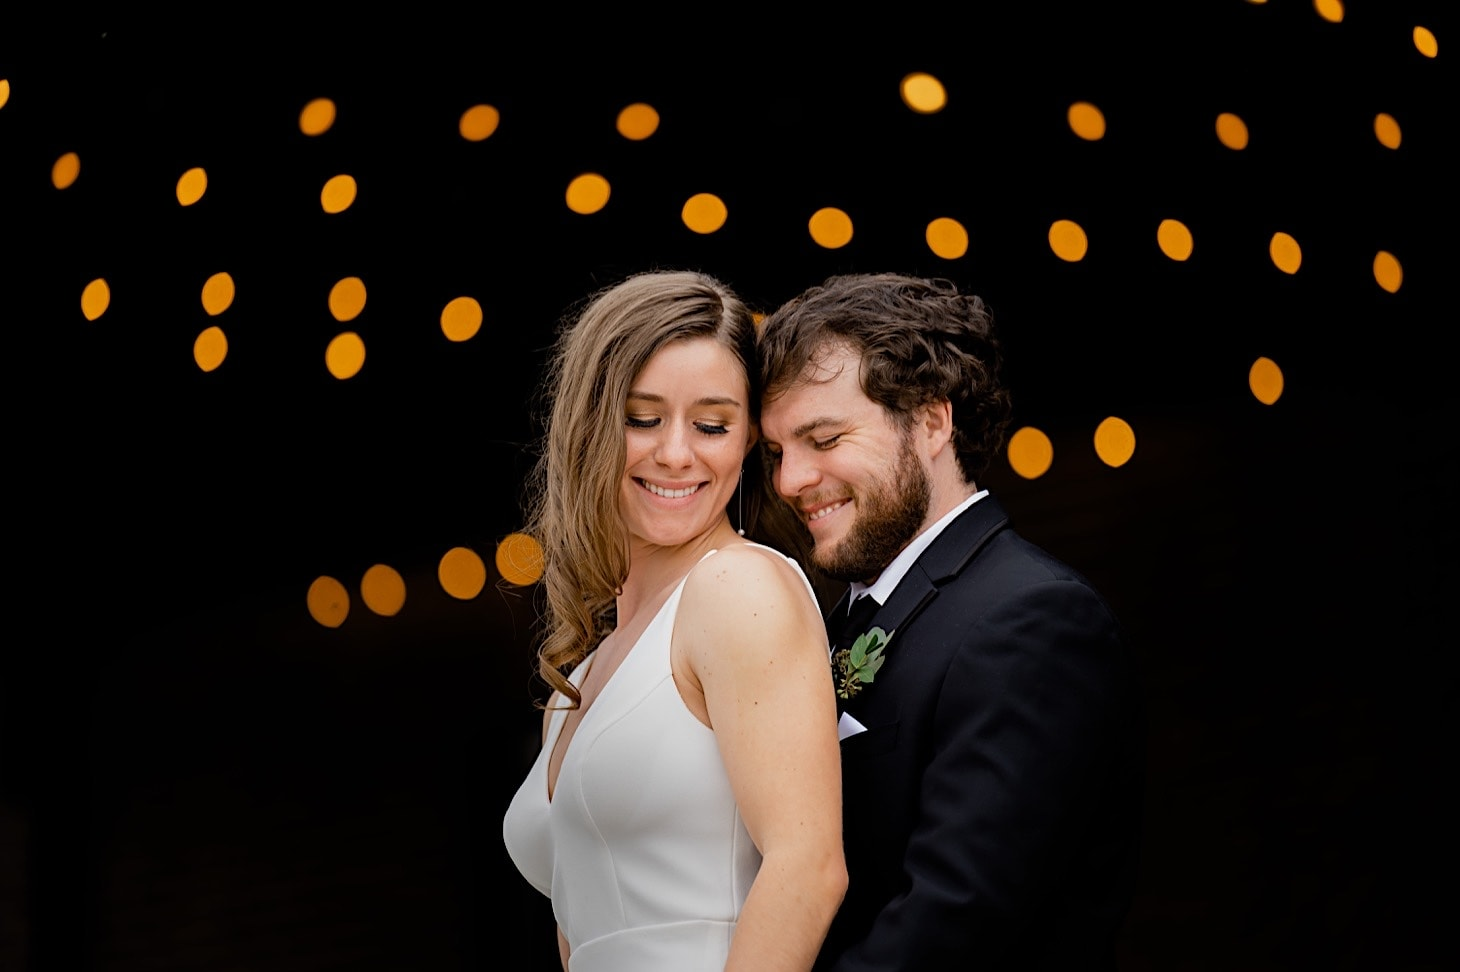 bride and groom photography downtown Des Moines Iowa